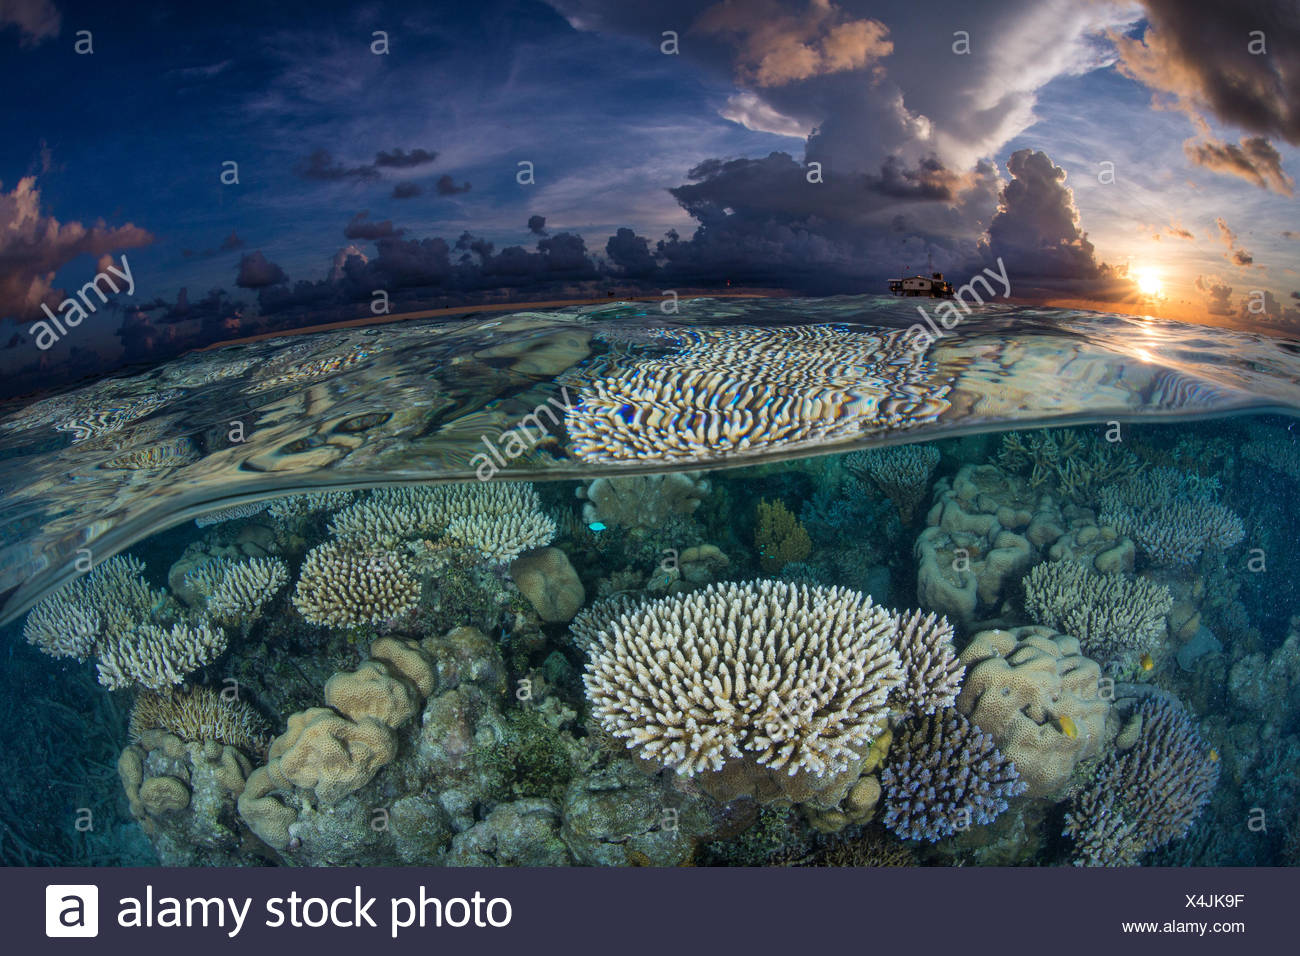 Sunrise on a shallow coral reef at the Tubbataha ranger station. - Stock Image